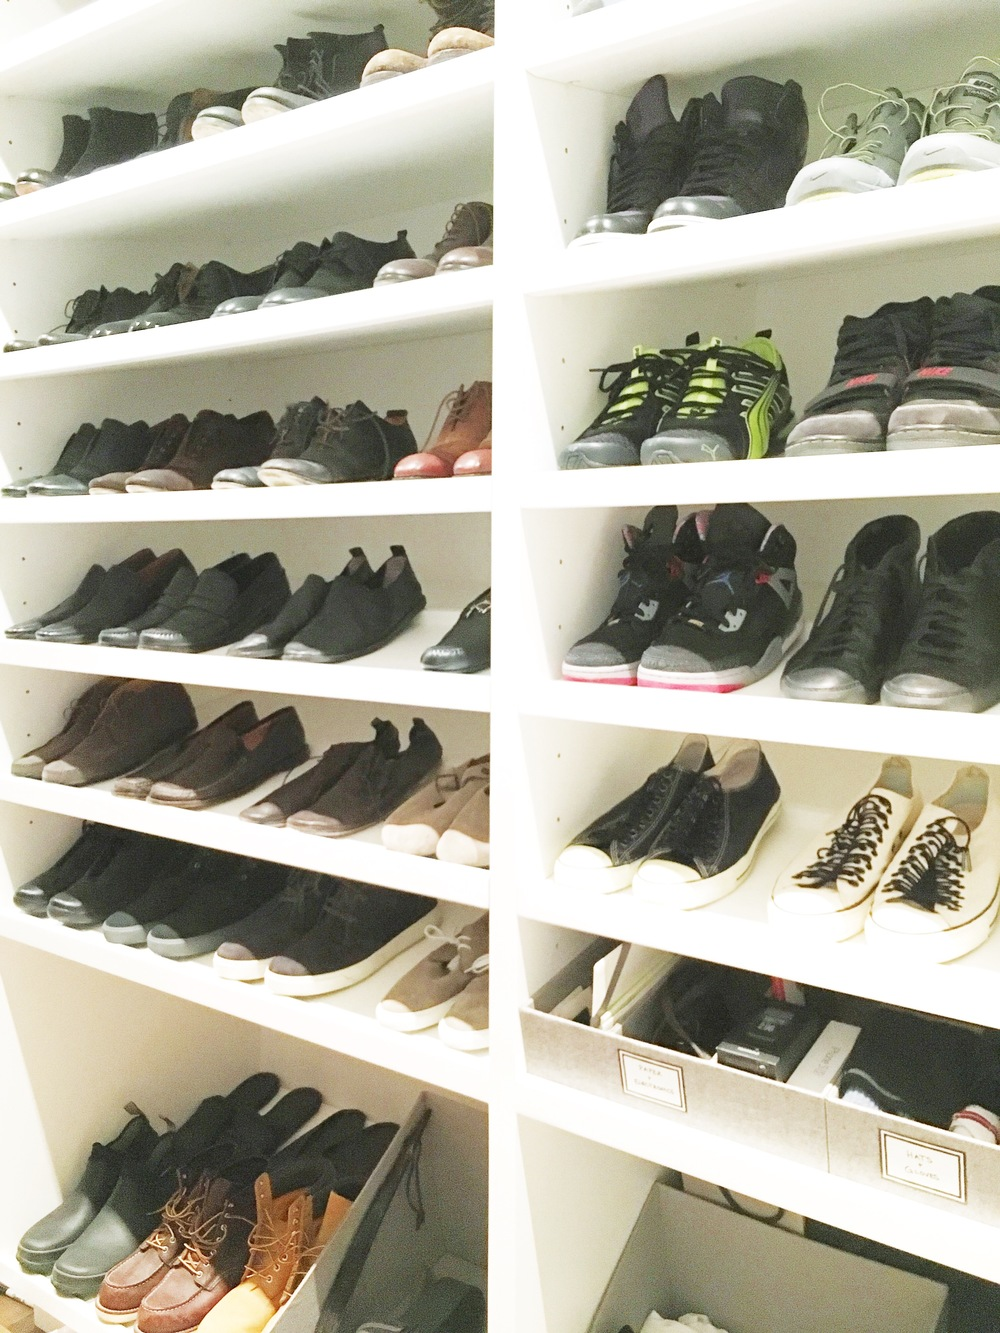 Shoes organized by type and color. Linen storage bins for accessories, hats, and gloves.